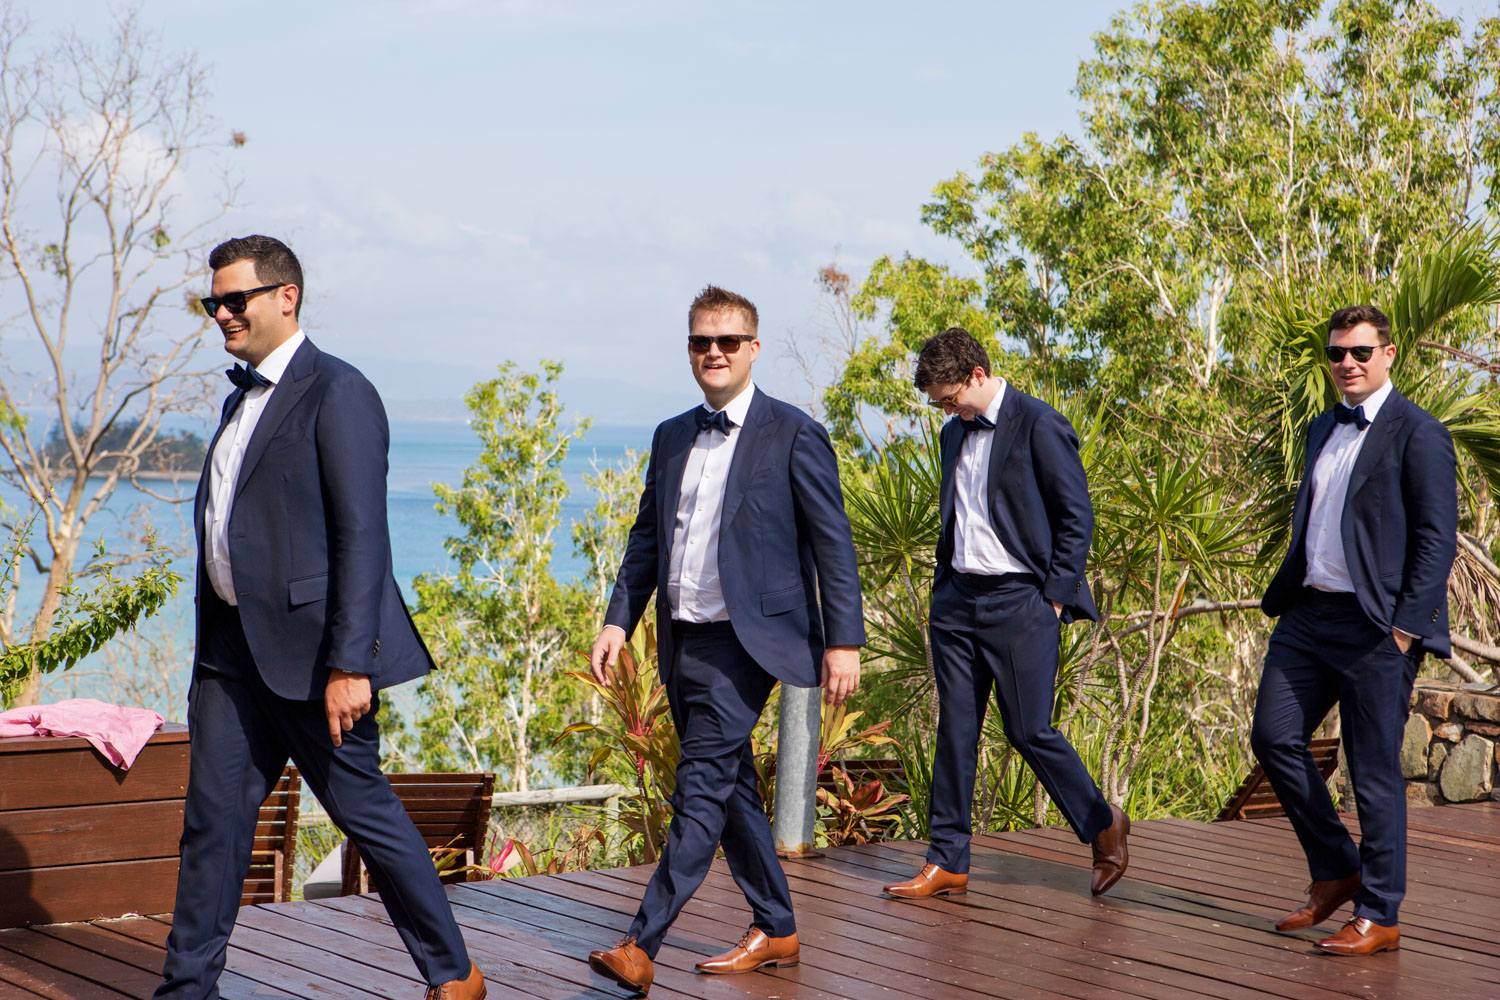 wedding-0099-suits-bowties-groom-groomsmen-queensland-australia.jpg